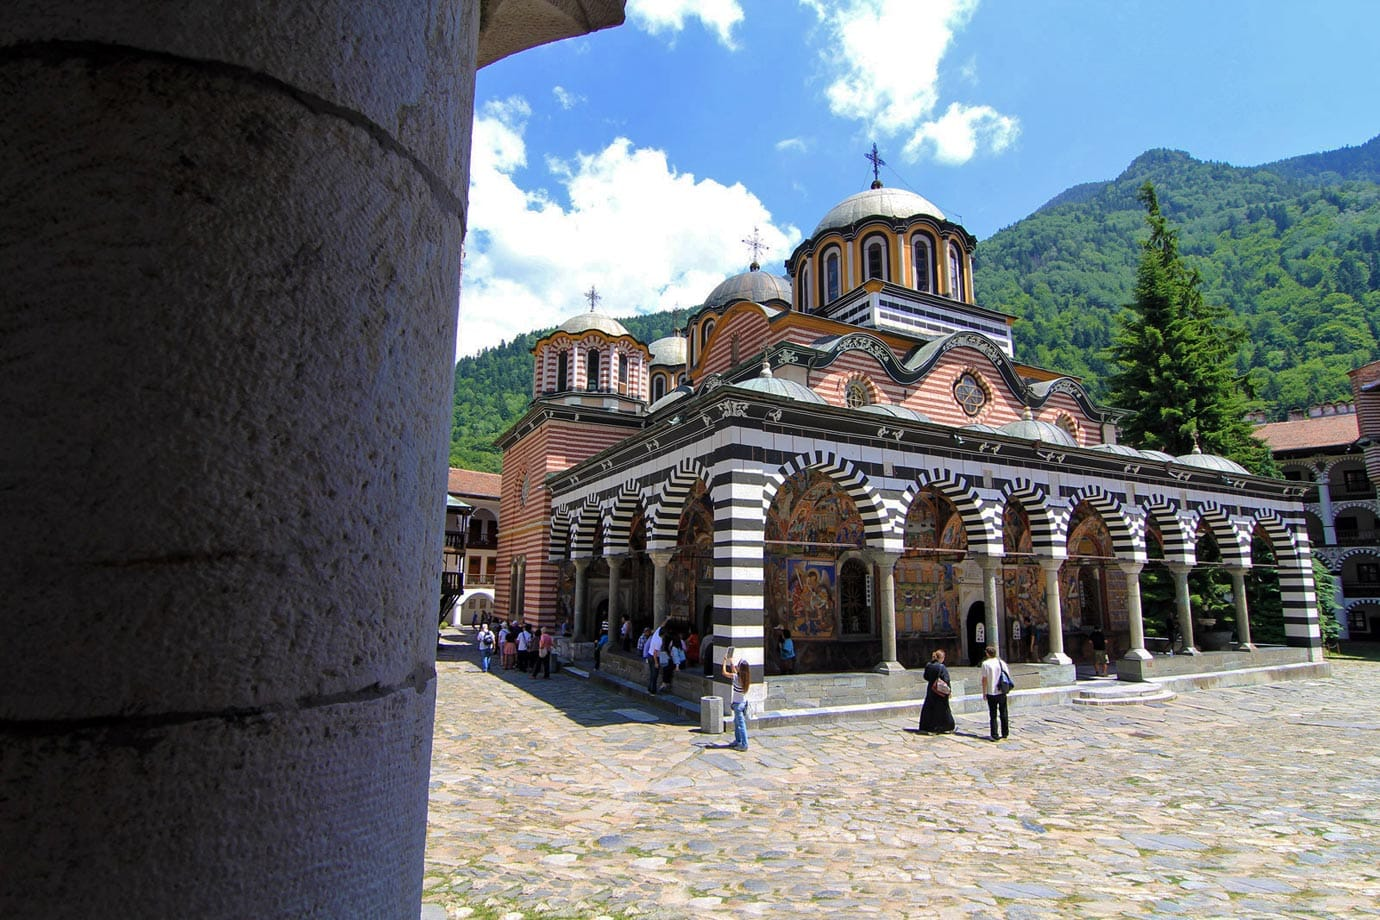 Rila Monastery is largest and most famous Eastern Orthodox monastery in Bulgaria